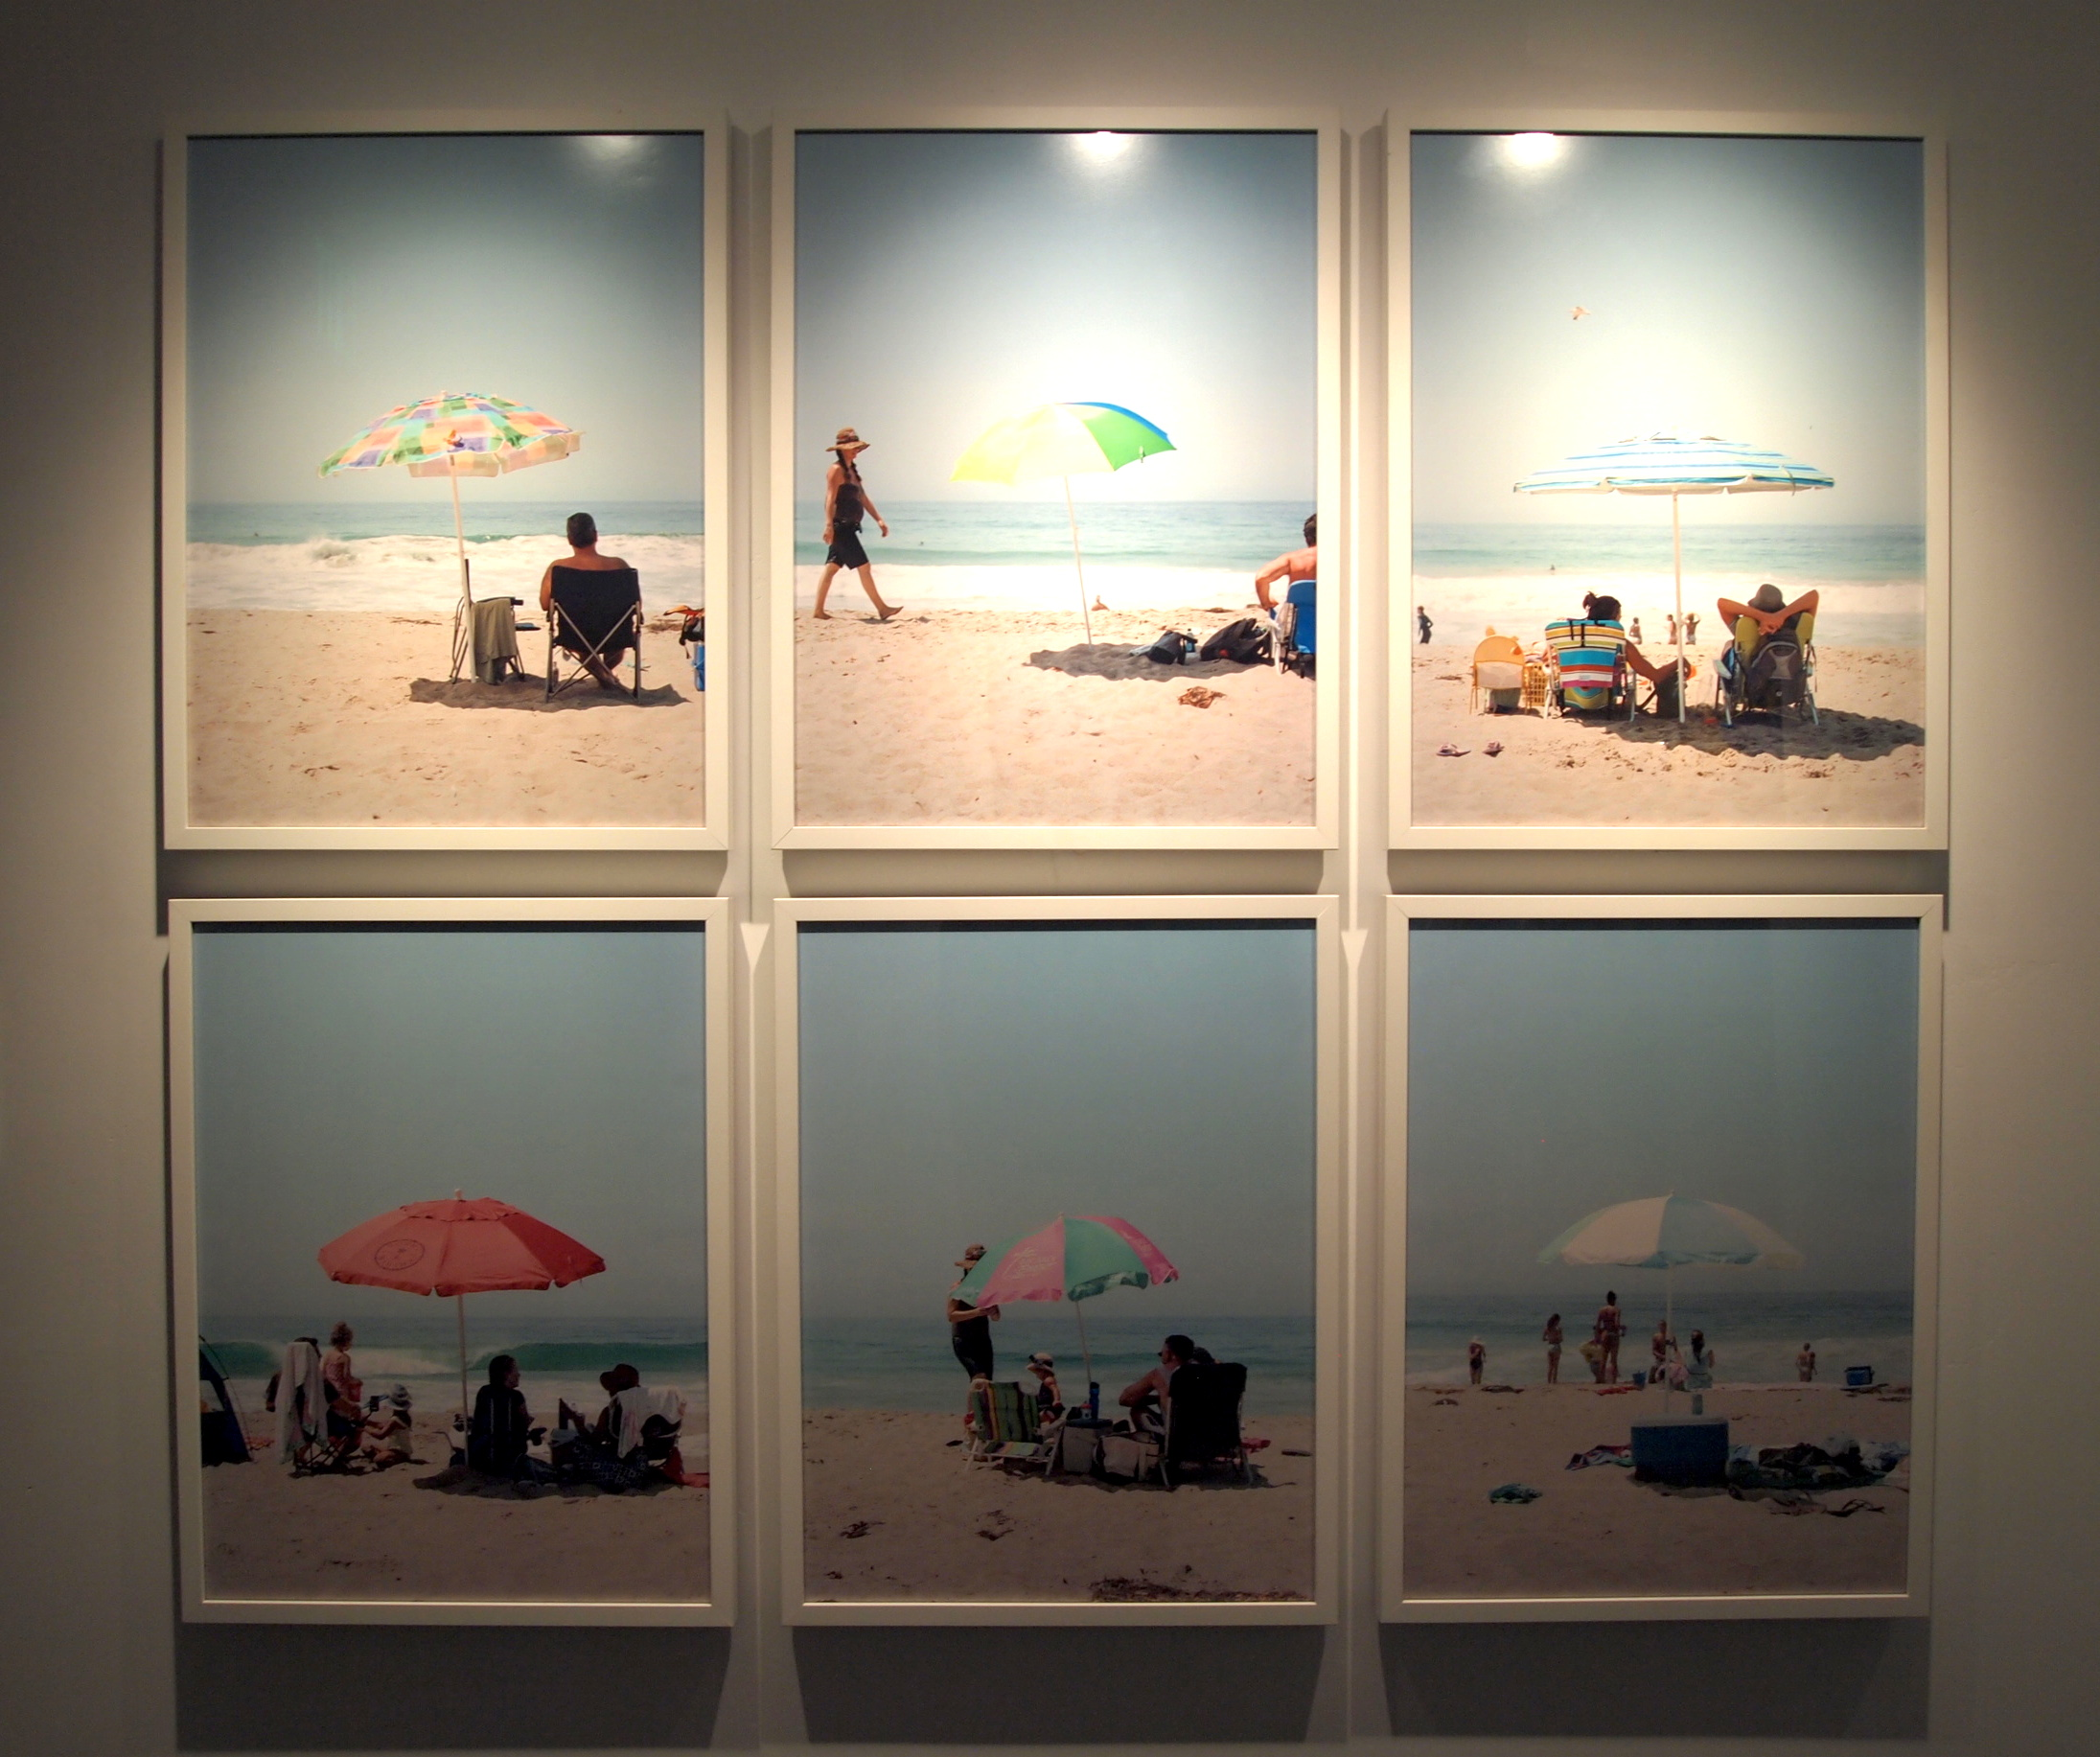 One of The Goodland's art installations: An entire wall of beach umbrella photos {only a few shown here} by Keegan Gibbs, who was raised near the ocean and inspired by its influence on humanity.